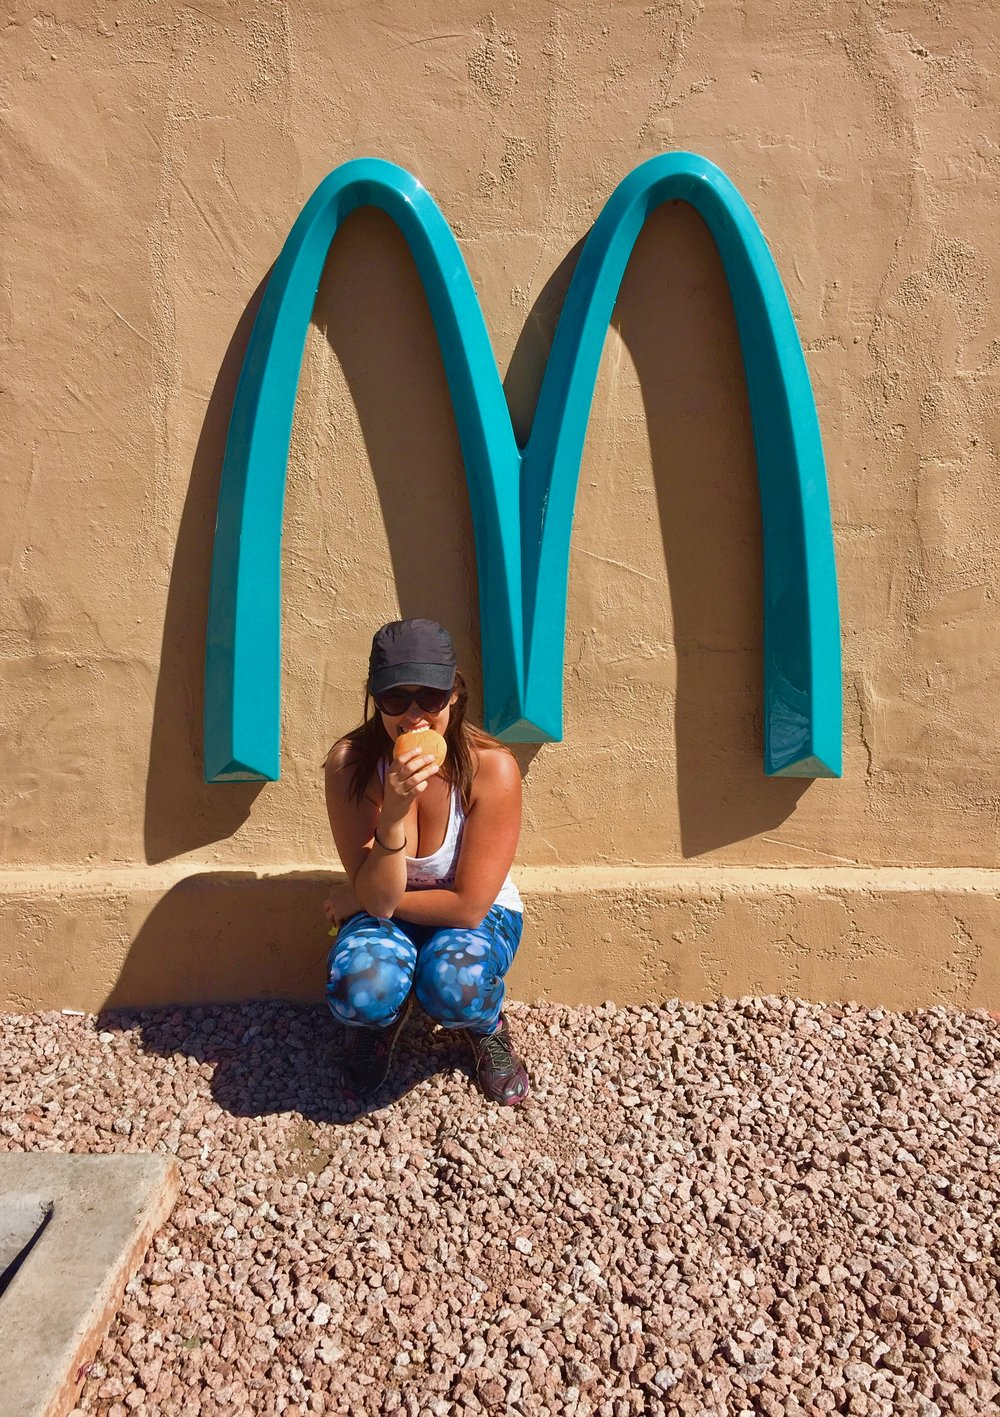 McDonald's Blue Arches, Sedona, Arizona